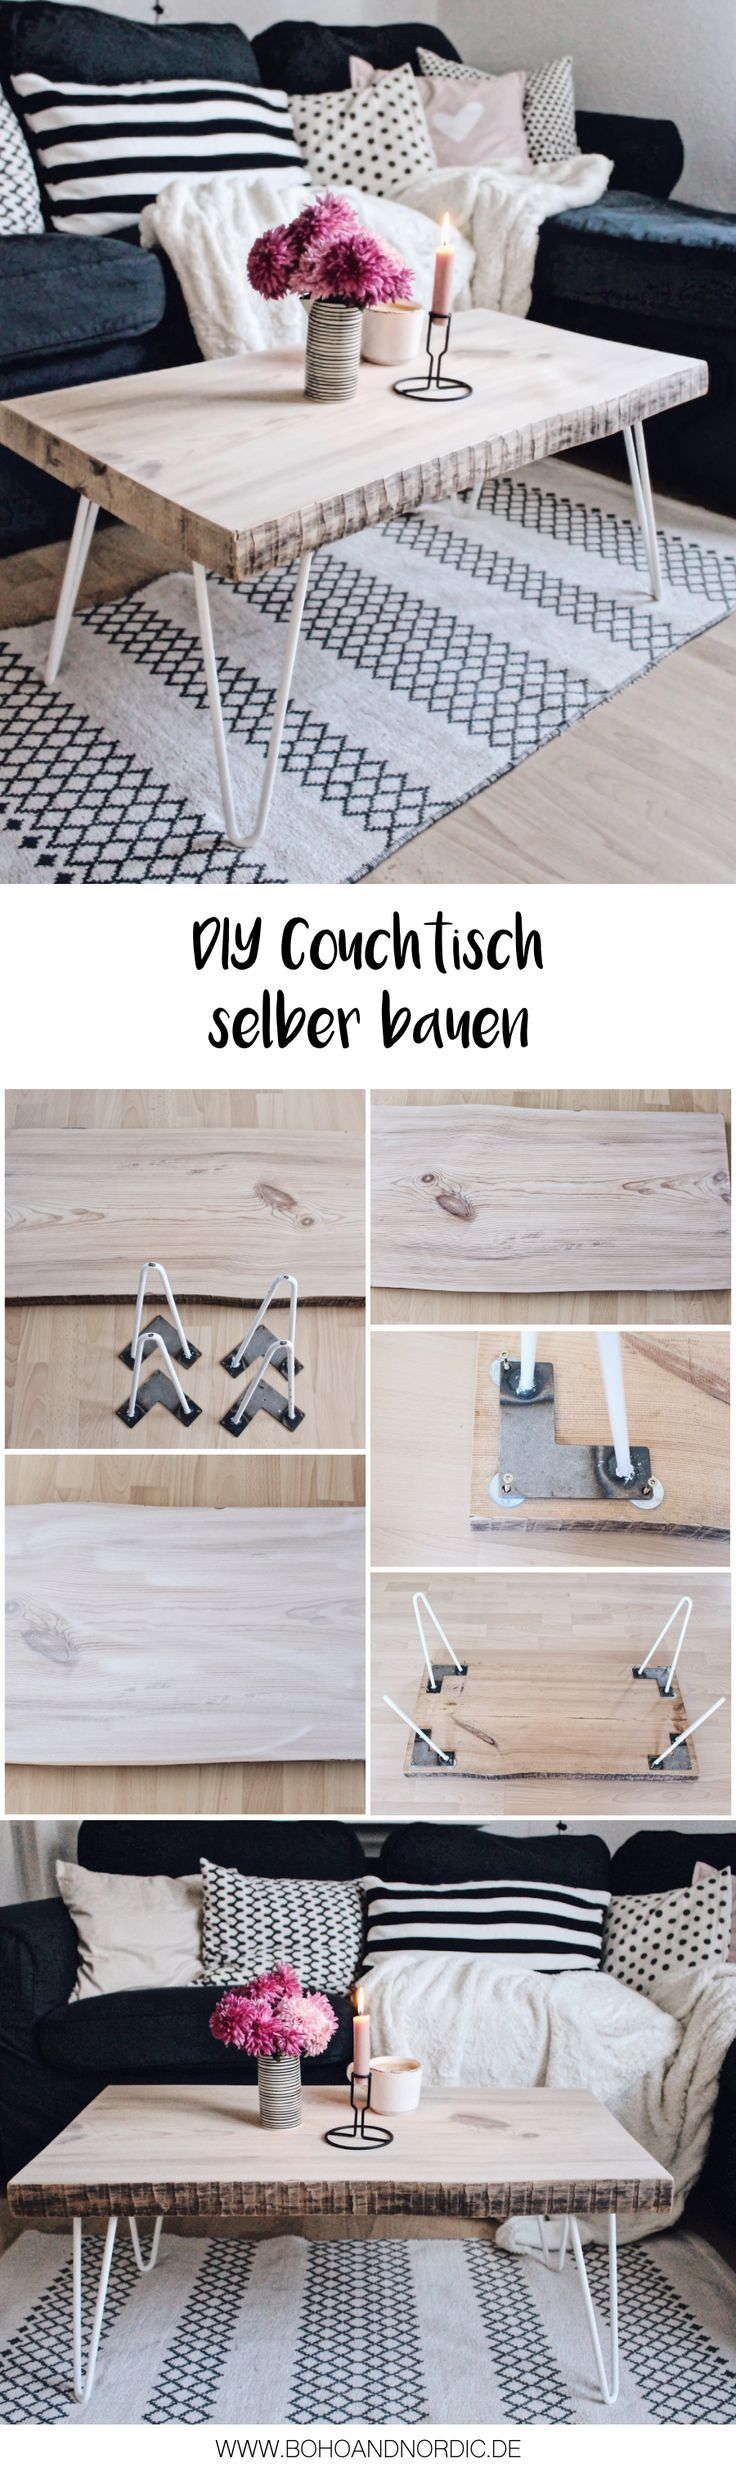 Couchtisch Fashion For Home Diy Couchtisch Selber Bauen Diy Gifts Diy Coffee Table Diy